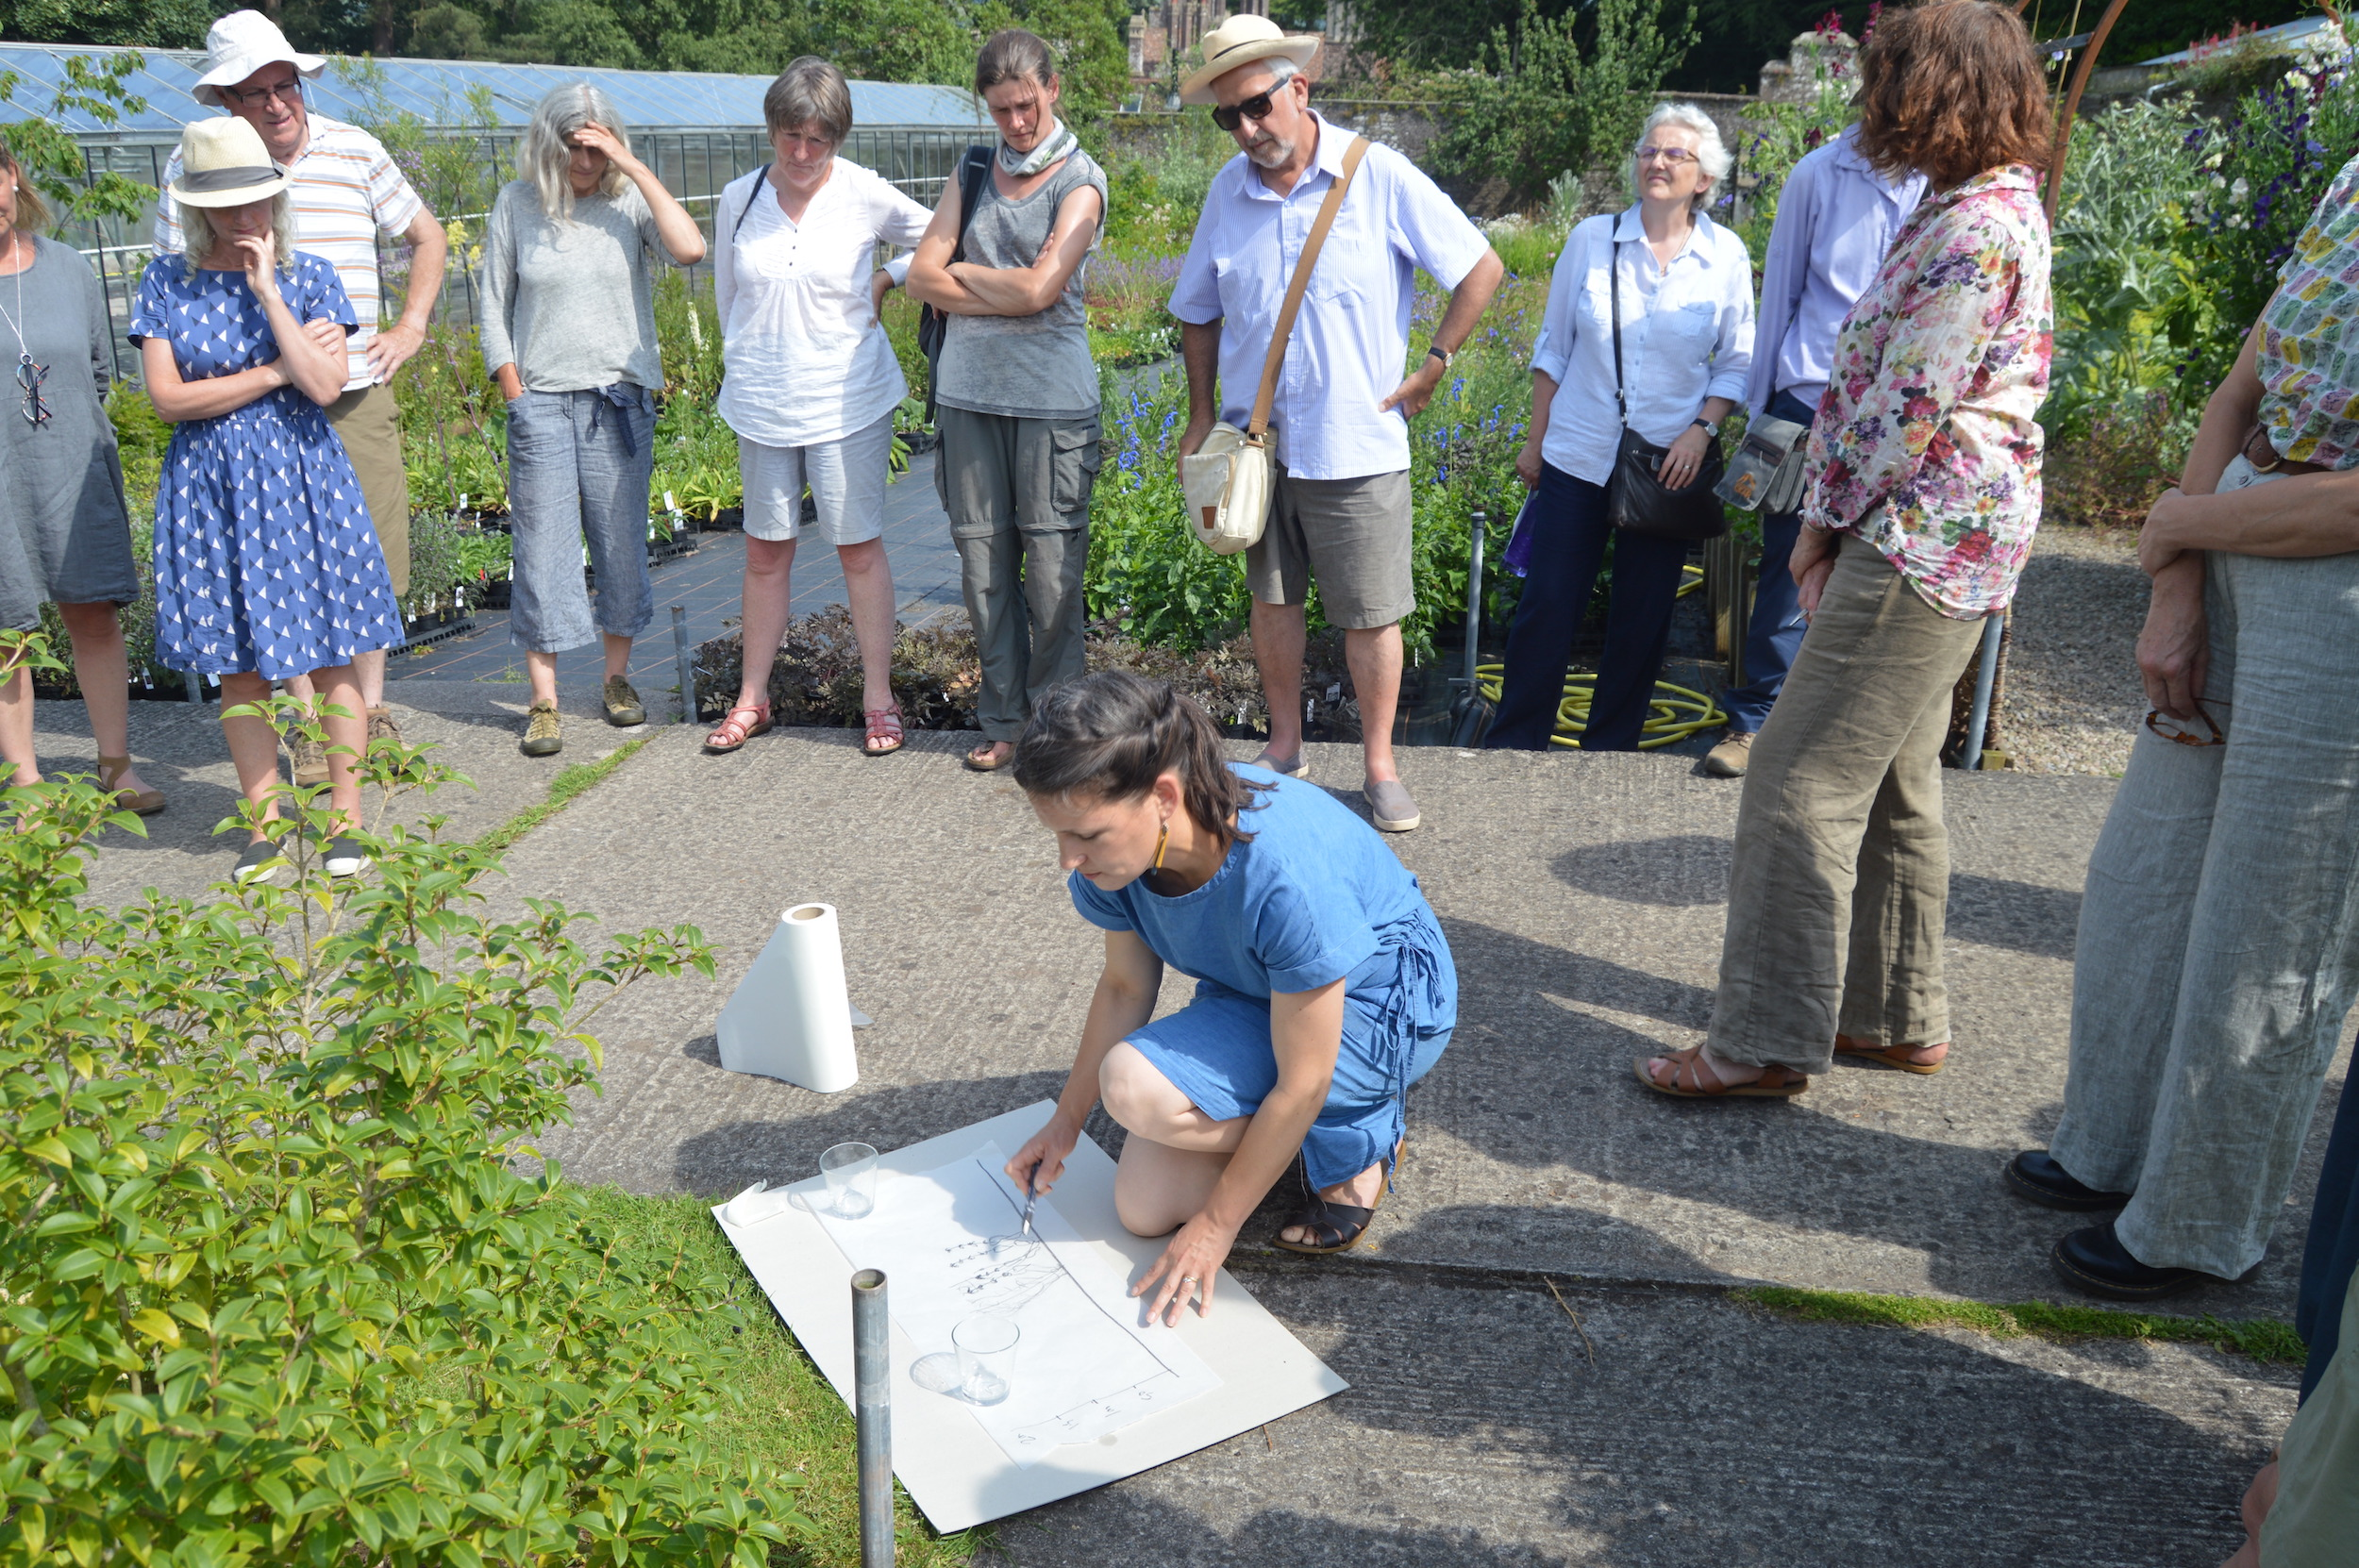 - Designer Sarah Price leads the drawing class at Treberfydd, July 2017.